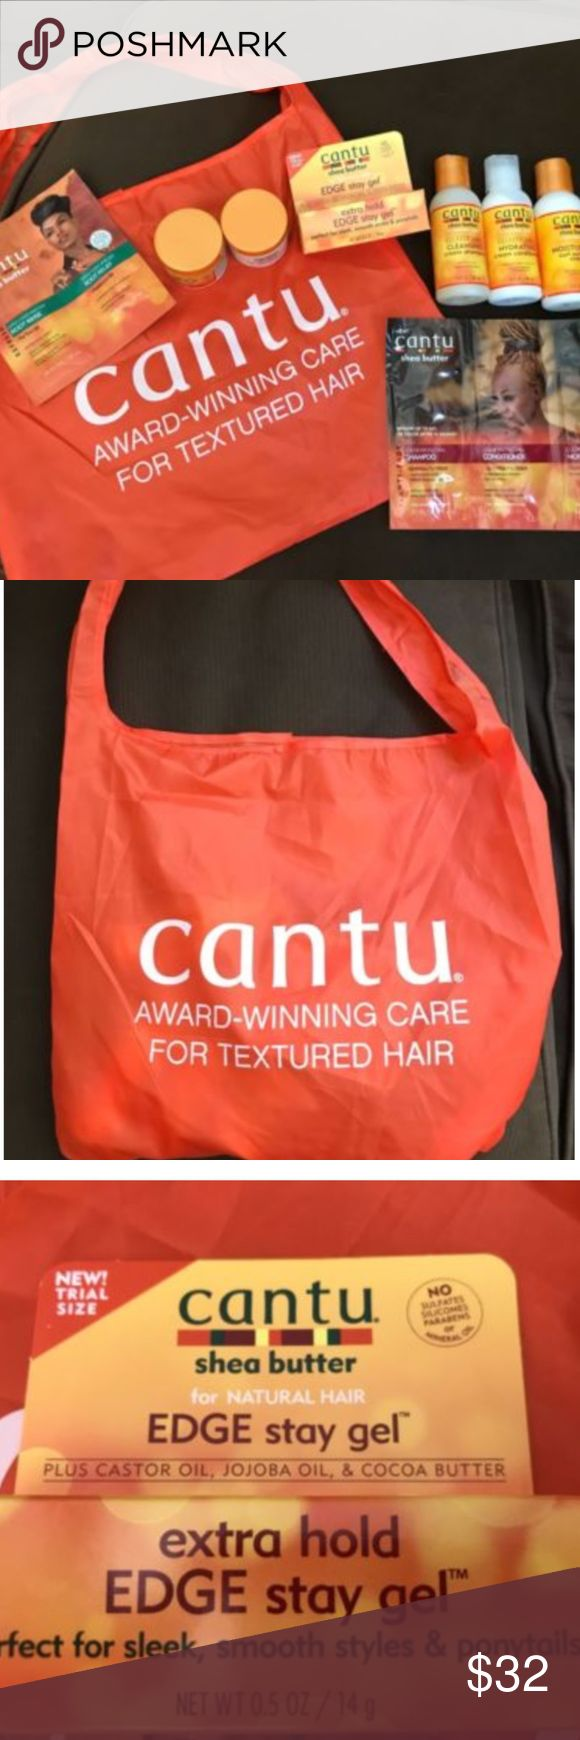 NEW - Cantu Product Sample Bag from Beautycon LA NEW - Cantu Product Sample Bag from Beautycon LA  Cantu Shea Butter for Natural Hair Sulfate Free Cleansing Shampoo 3oz Cantu Shea Butter for Natural Hair Sulfate Free Hydrating Cream Conditioner  3oz Cantu Shea Butter for Natural Hair Moisturizing Curl Activator Cream  3oz Cantu Shea Butter for Natural Hair Coconut Curling Cream 2oz Cantu Shea Butter Leave-In Conditioning Repair Cream 2oz Cantu Shea Butter for Natural Hair Edge Stay Gel .5oz…